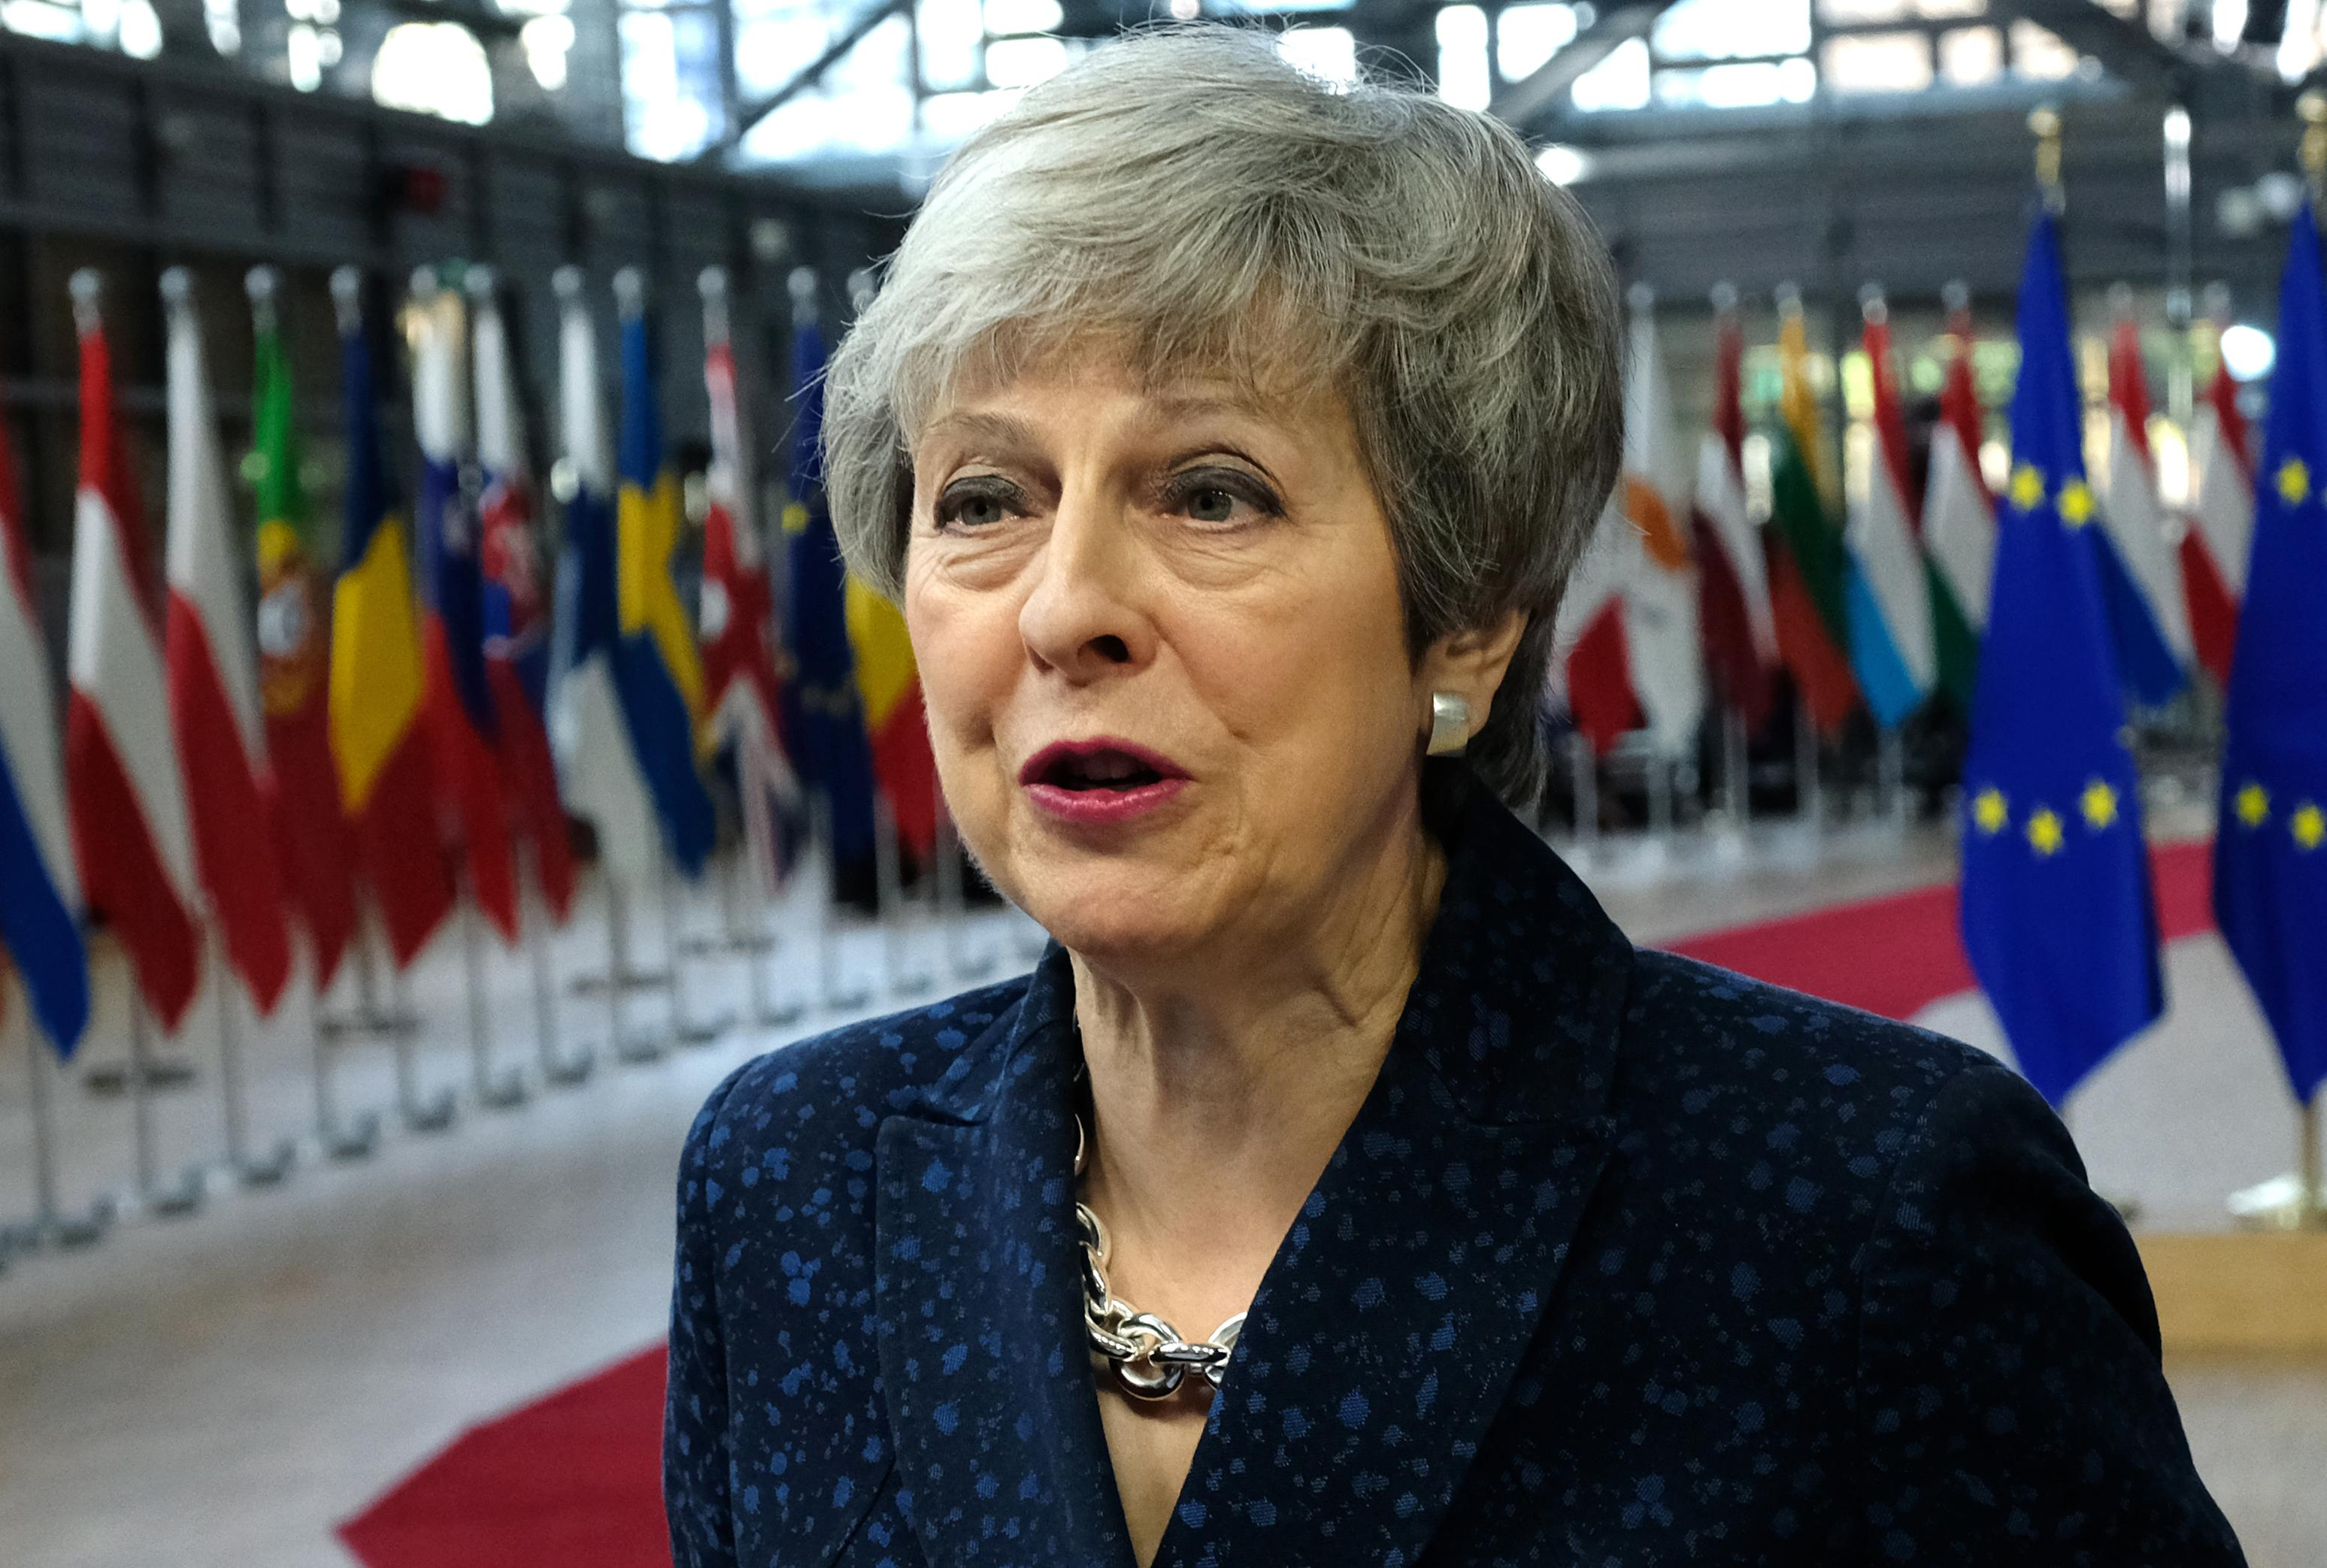 Theresa May in front of flags of various European countries.